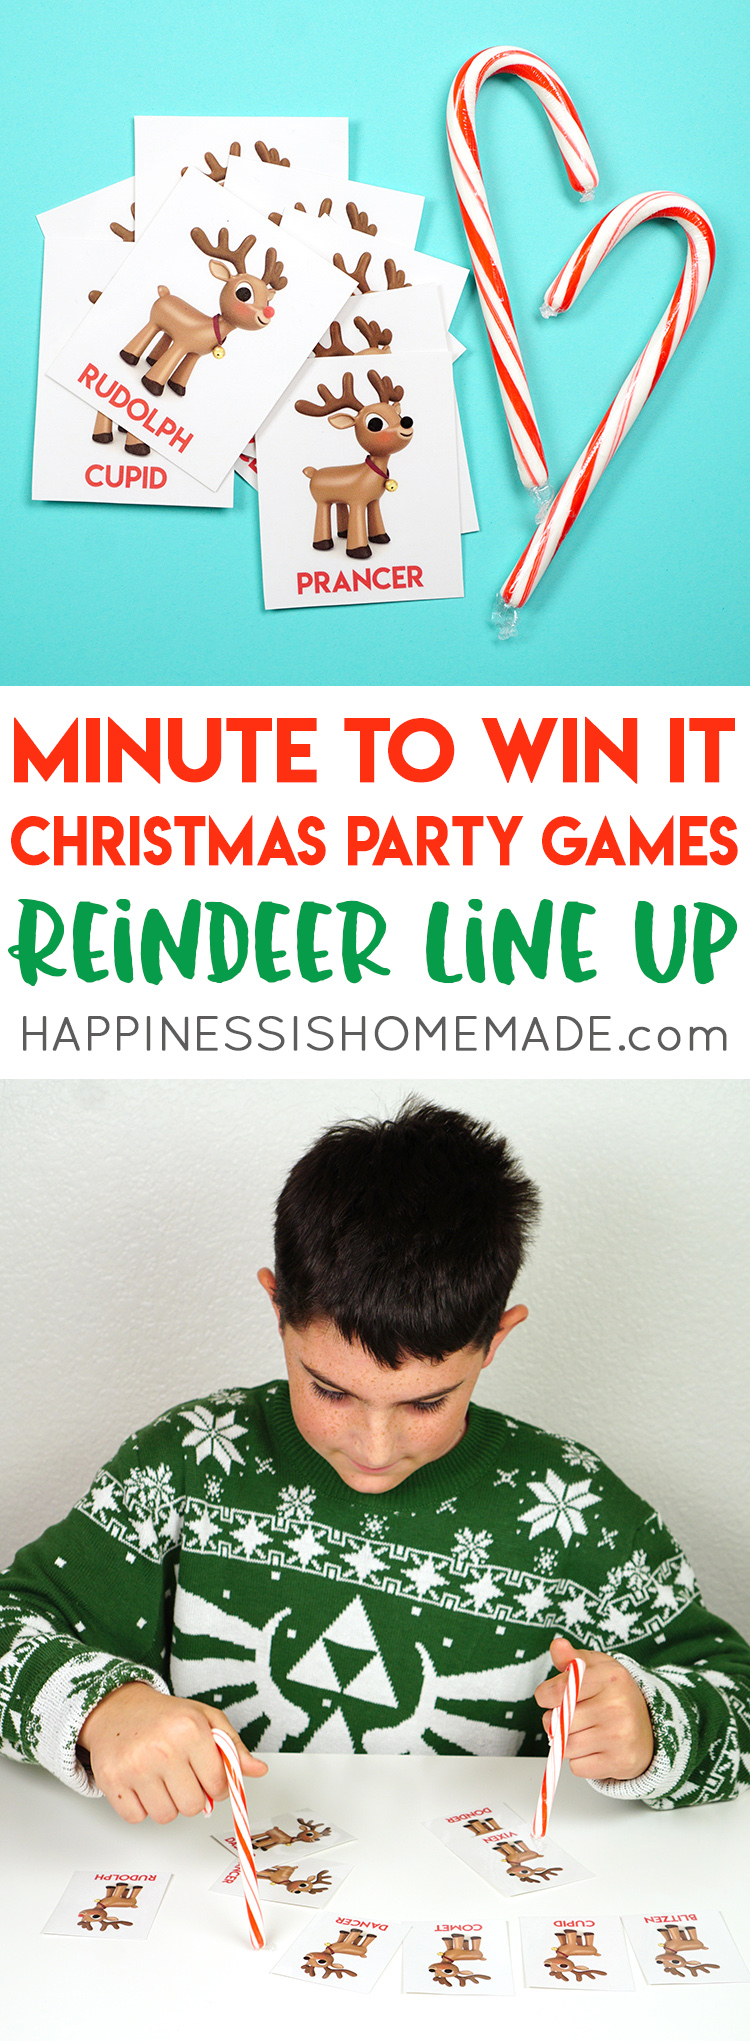 christmas party games minute to win it for all ages happiness 12808